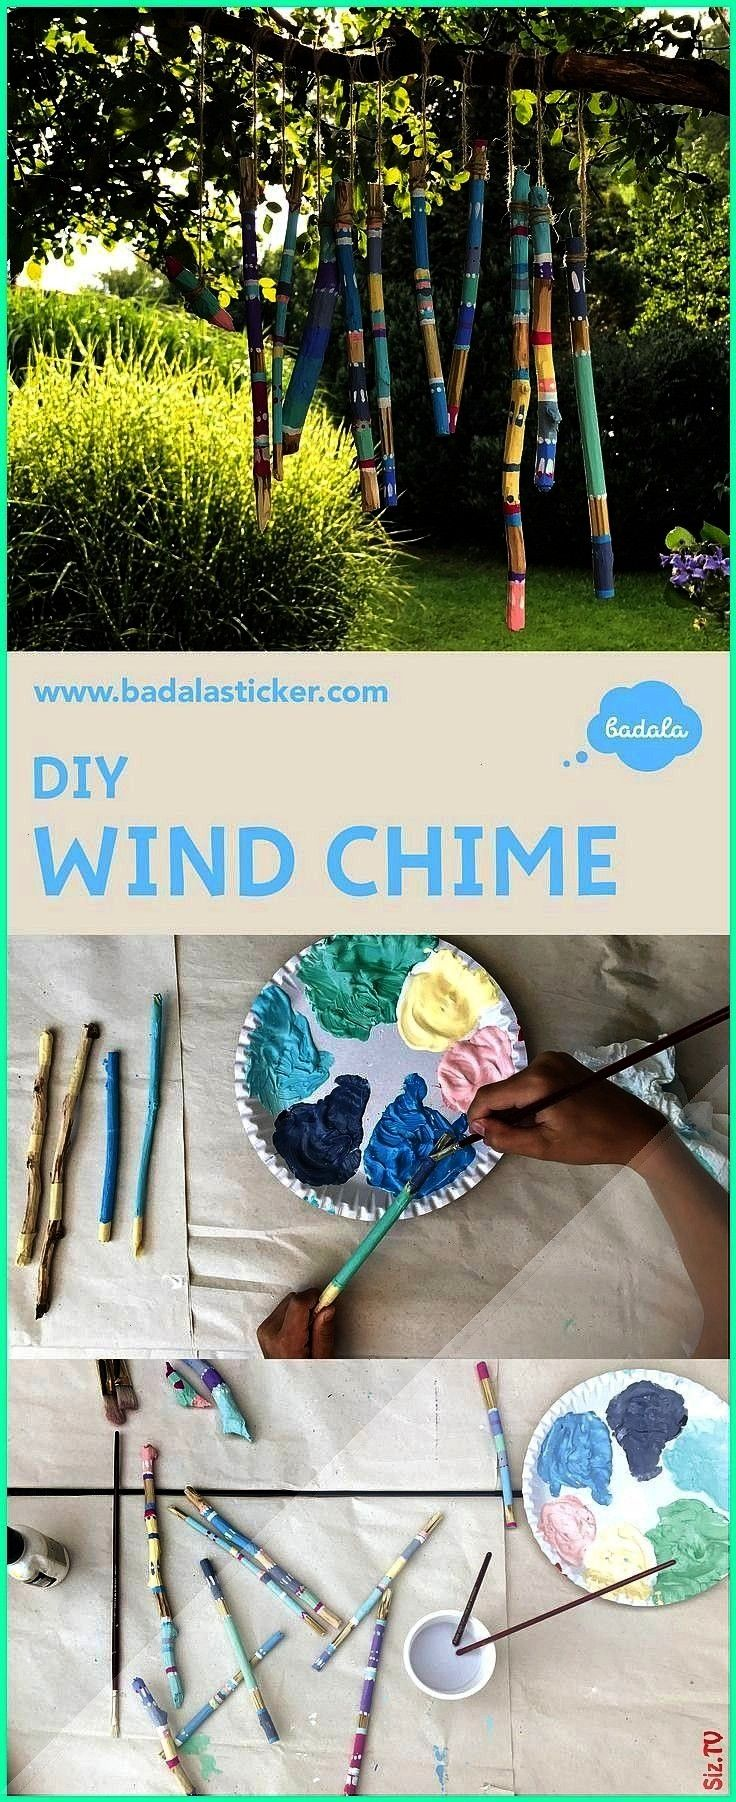 chime enjoy the time when your kids are busy with it Wind chime from wooden sticks that wood surfaces remain free wrap the s An easy wind chime enjoy the time when your k...